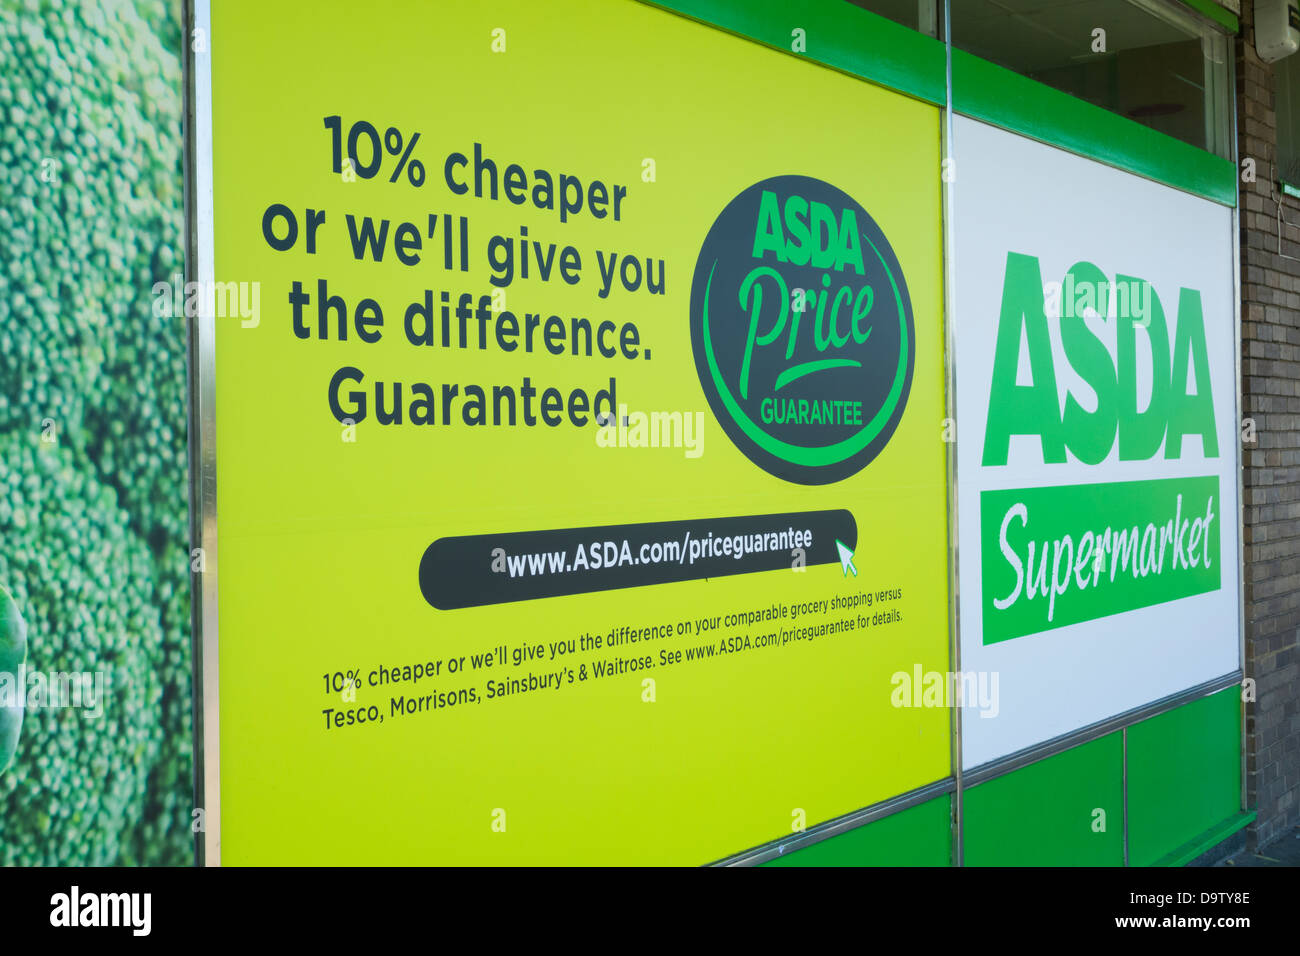 Price Guarantee Sign Outside Asda Store In England, UK   Stock Image